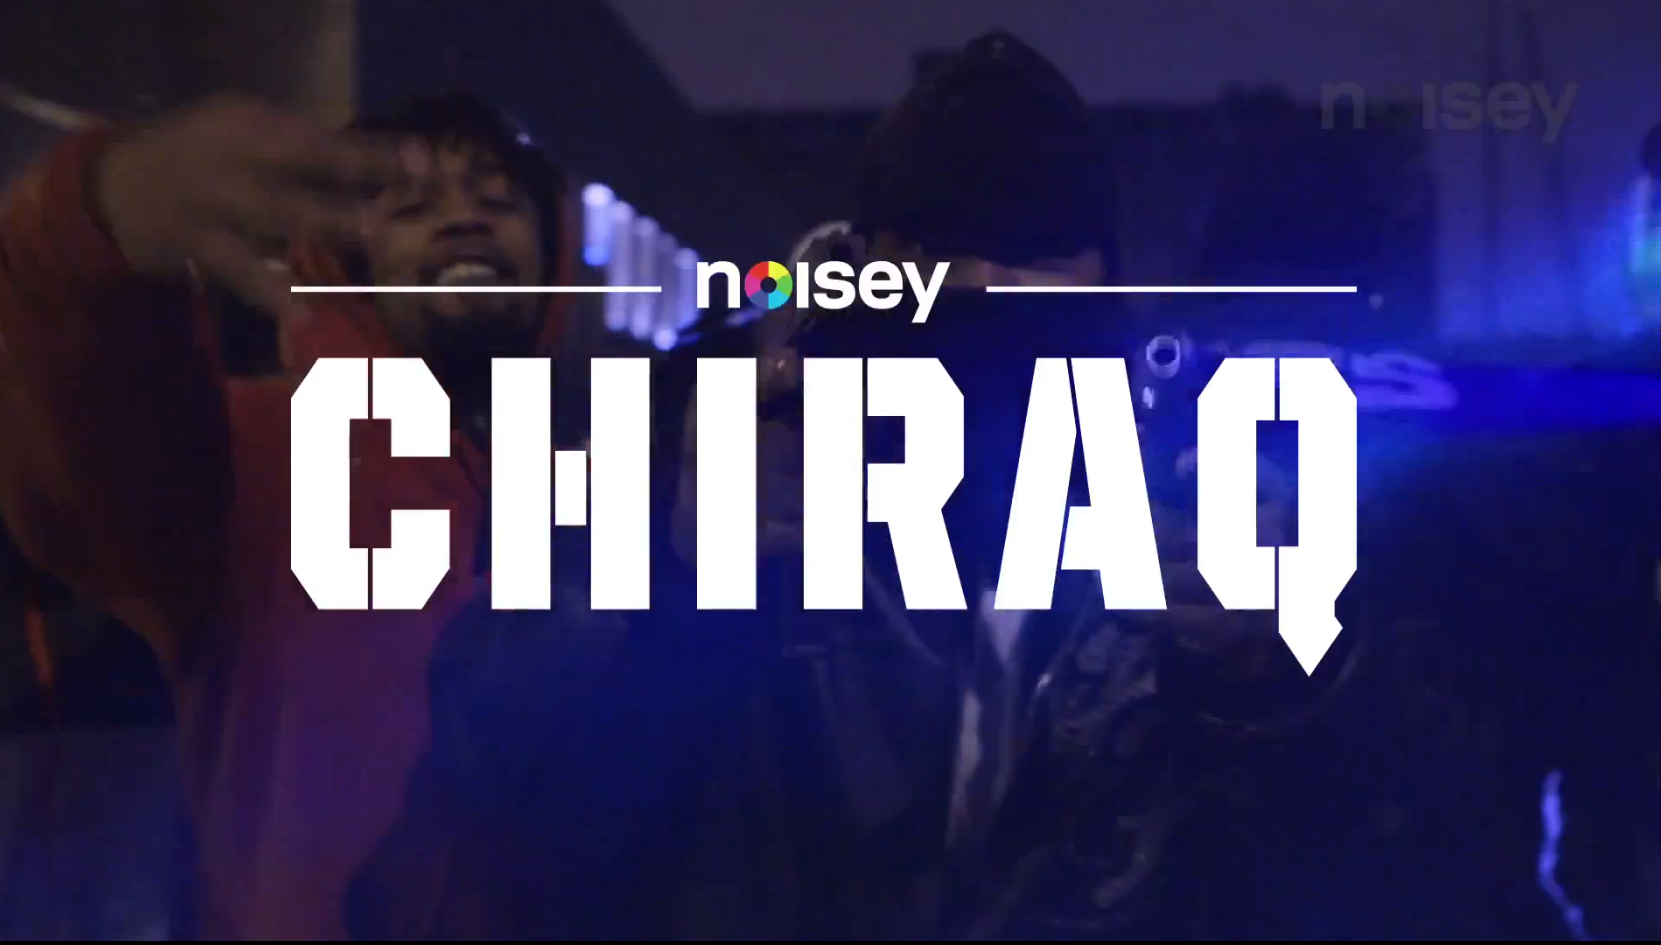 Chiraq Documentary, Chief Keef, Vice, Noisey